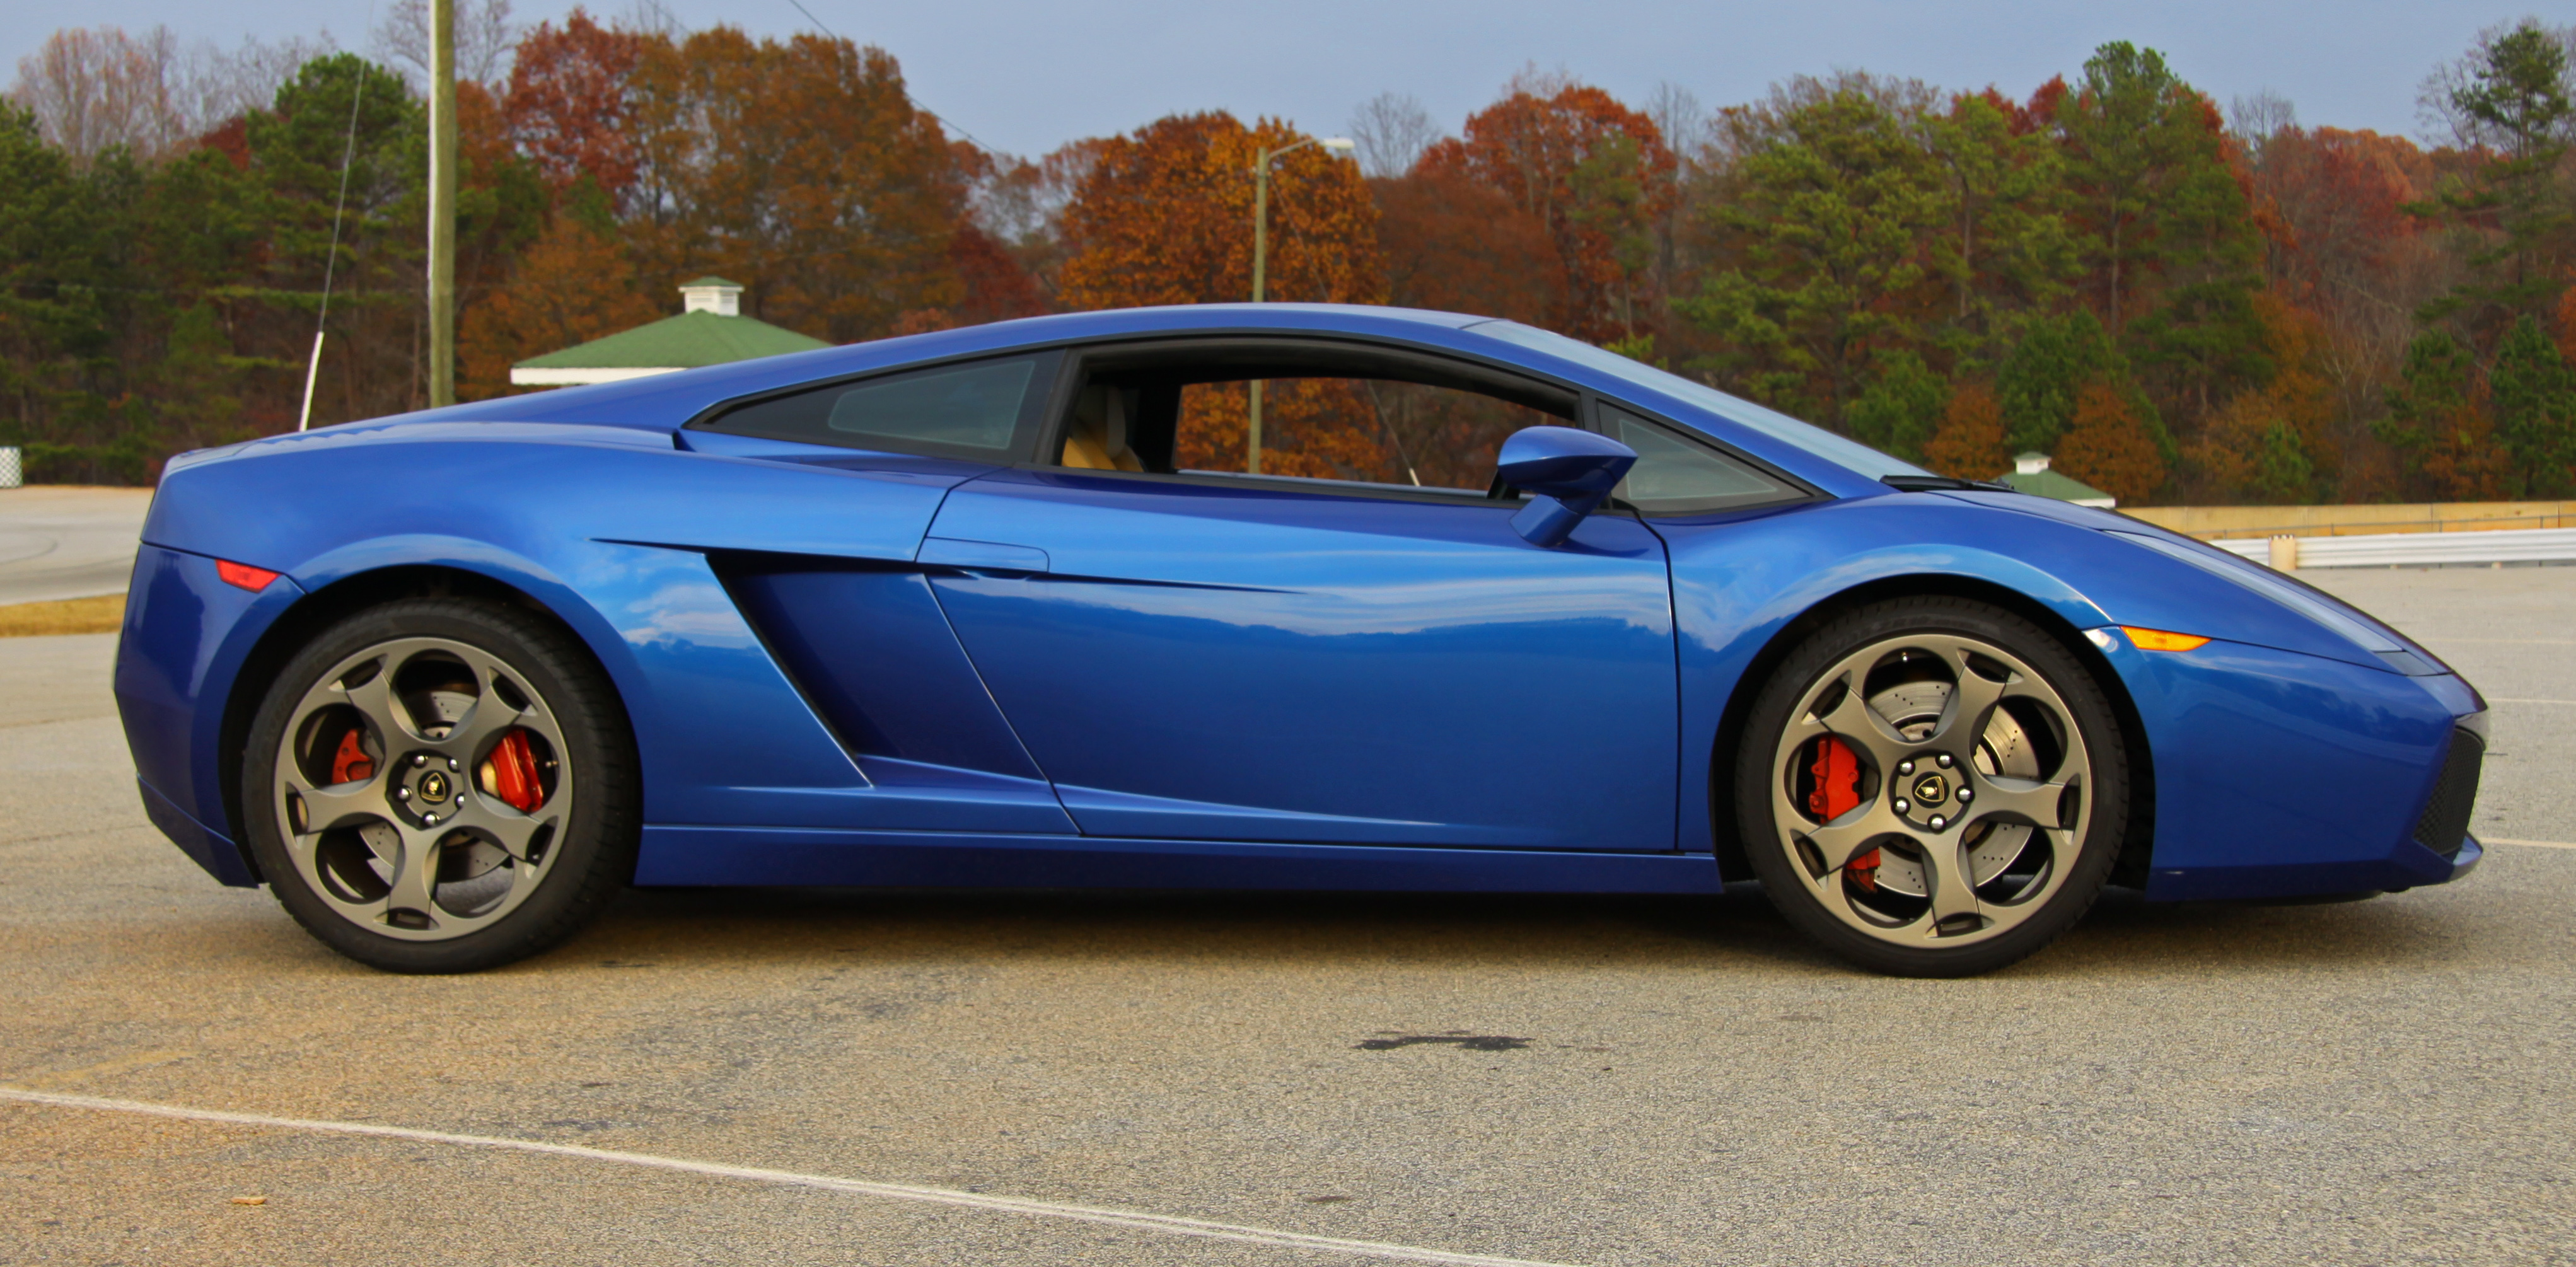 cars lamborghini aventador rybrook dealer on used what car sv for sale